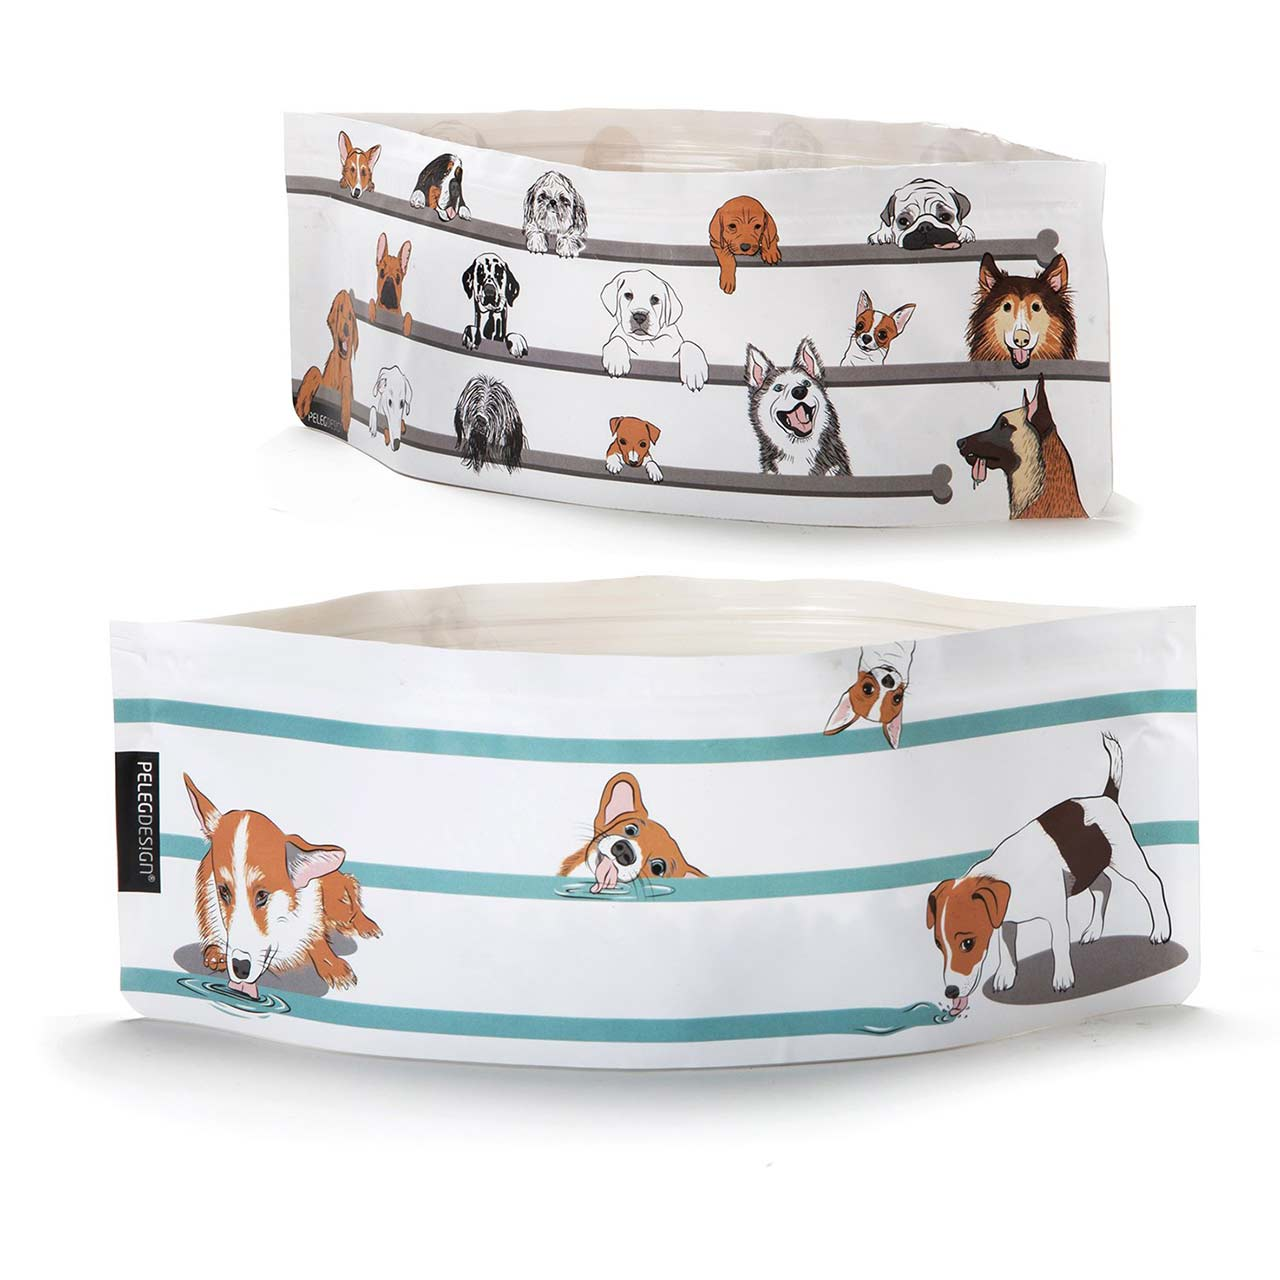 Expandable Dog Bowl Set Wuff'n'Go by Peleg | The Design Gift Shop